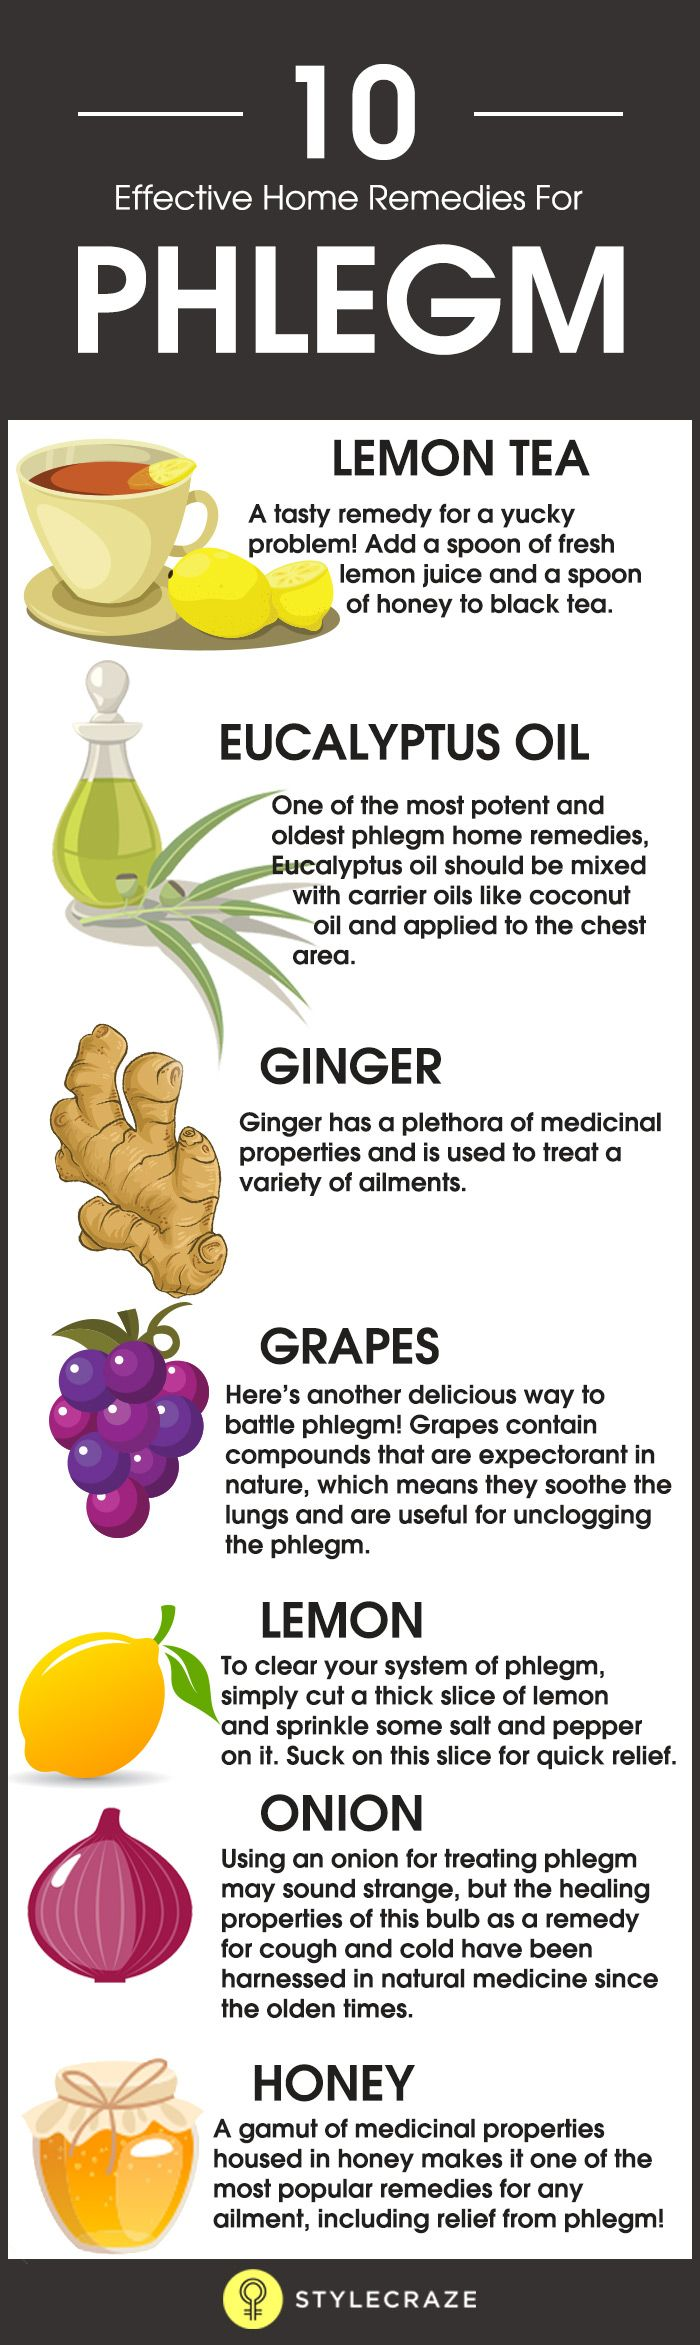 Getting Rid Of Phlegm: The Most Effective Home Remedies Infographic